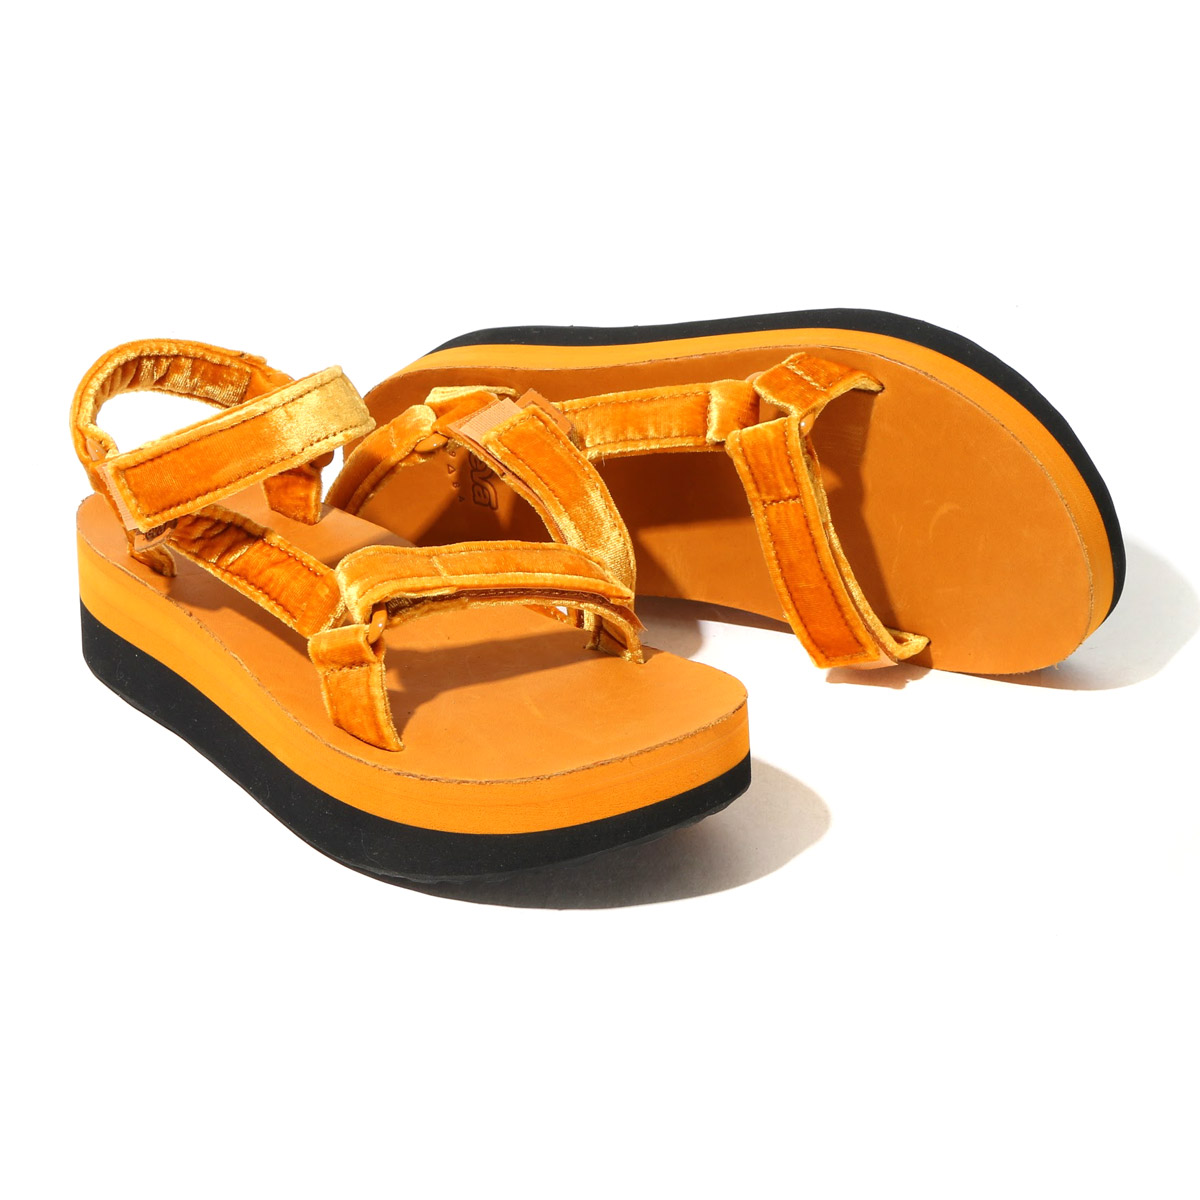 f39a5a4b18a FLATFORM UNIVERSAL VELVET (flat form universal velvet) which updated  popular platform sandals in a velvet material. The strap which can regulate  holds a ...